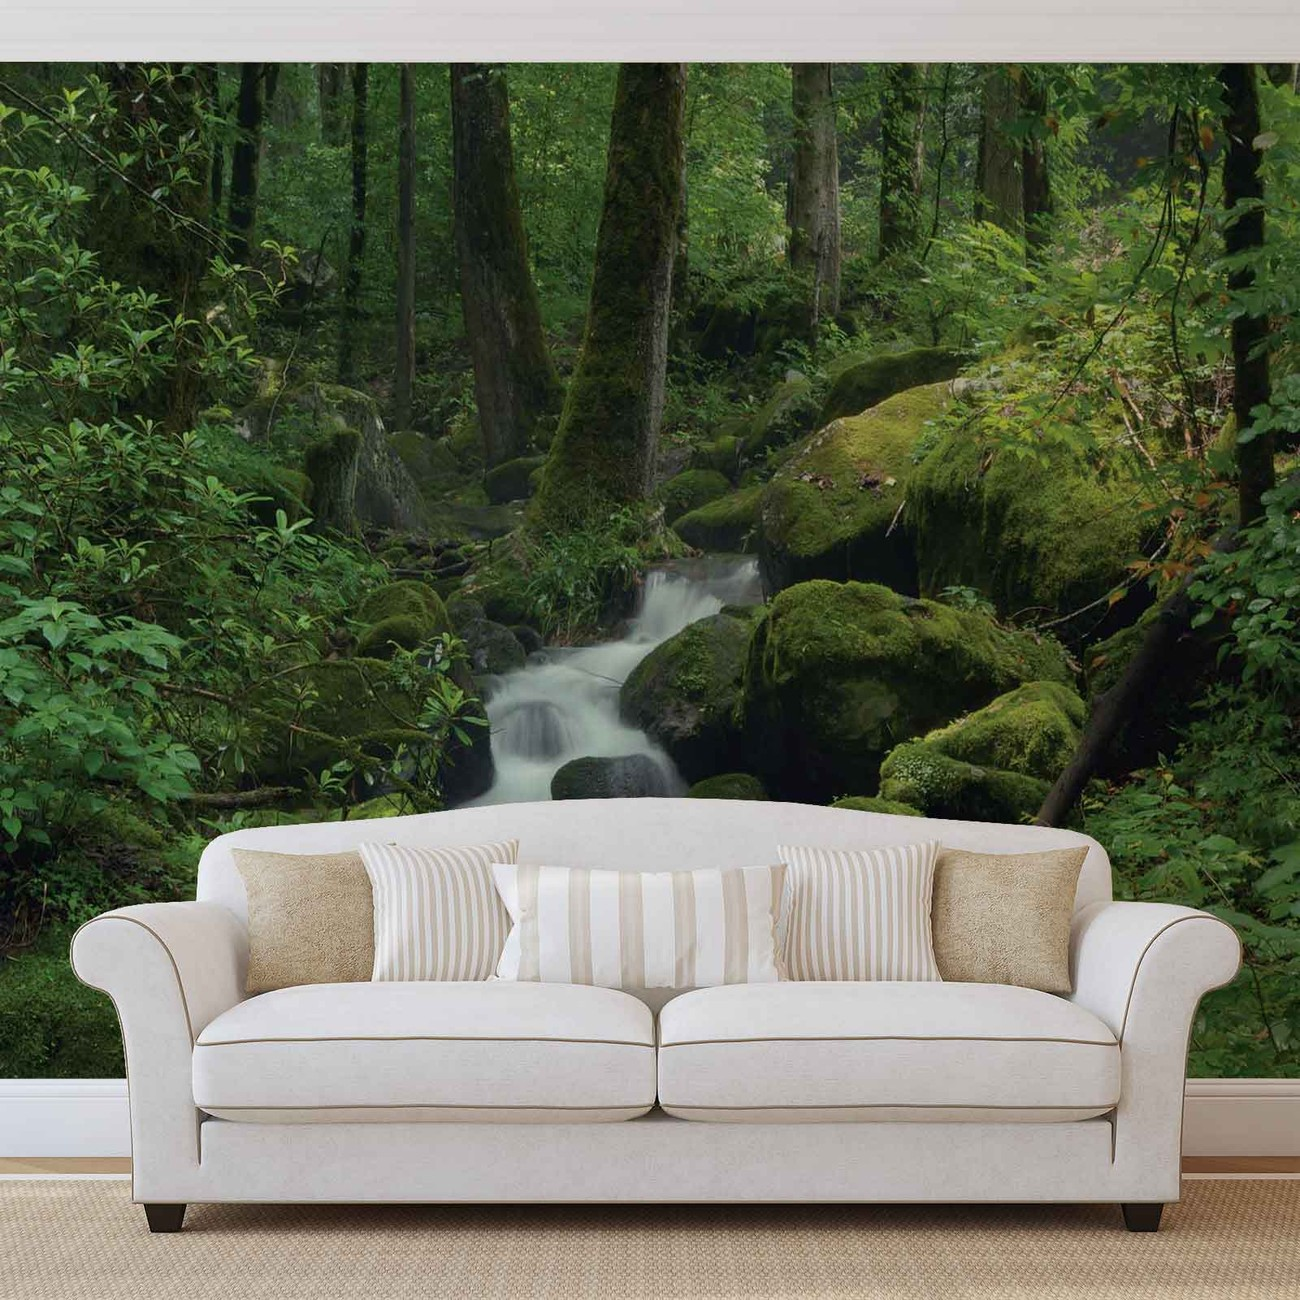 forest waterfall rocks nature wall paper mural buy at europosters. Black Bedroom Furniture Sets. Home Design Ideas